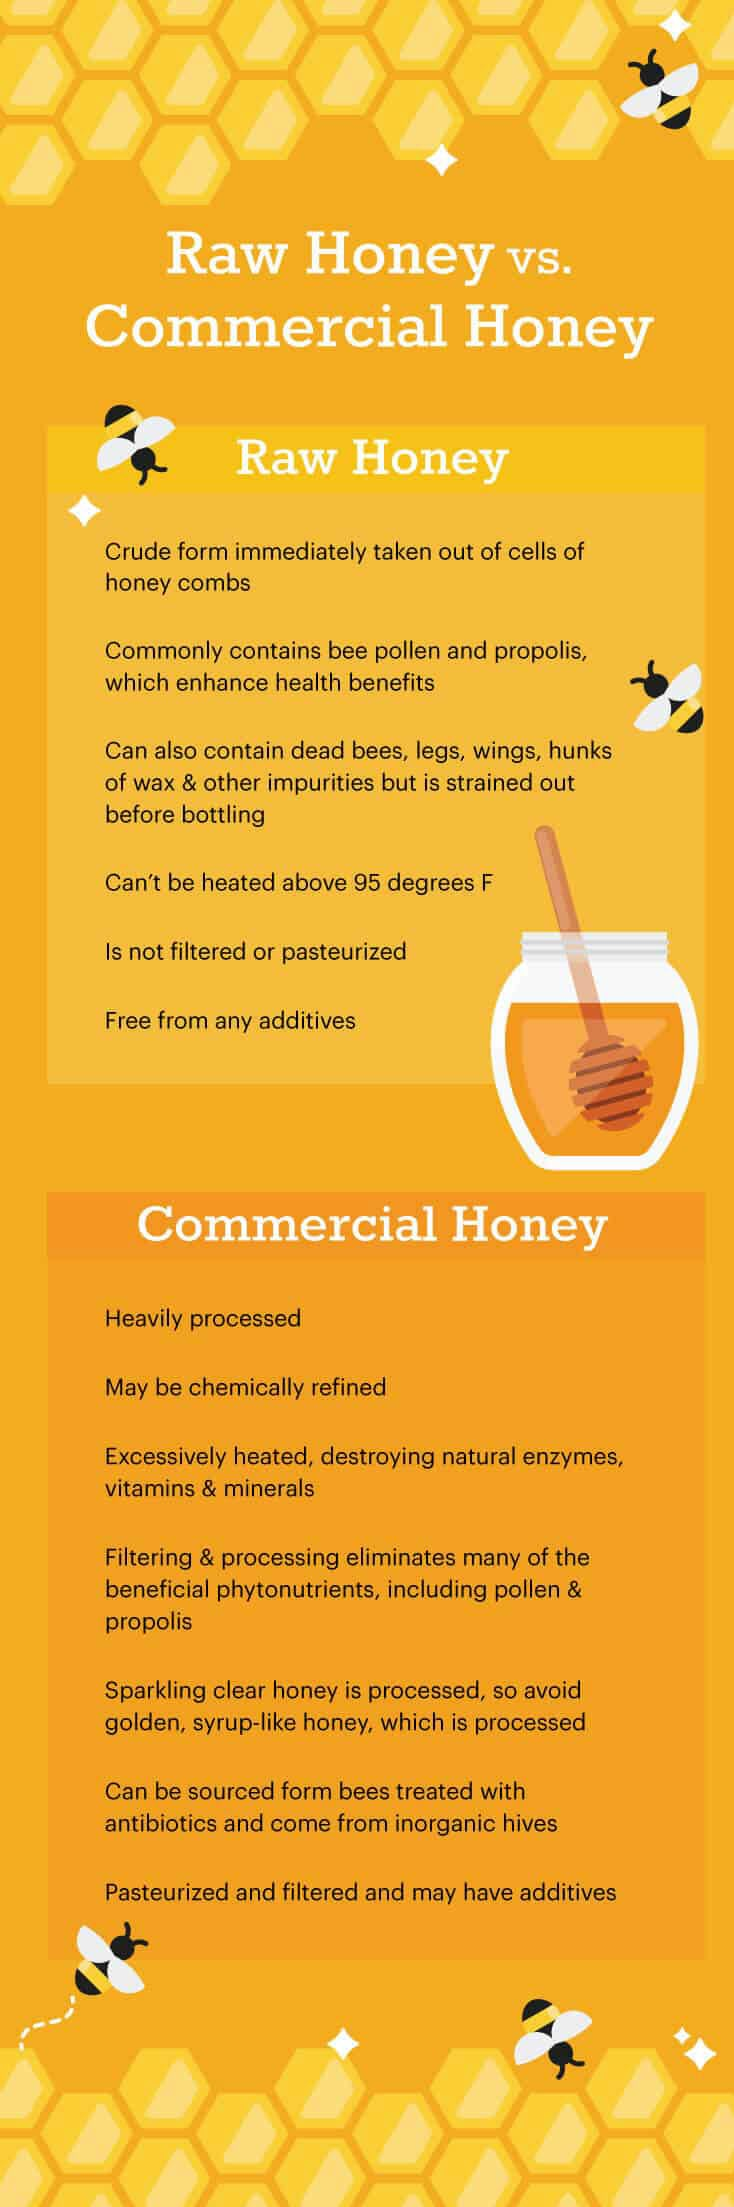 Raw honey vs. commercial honey